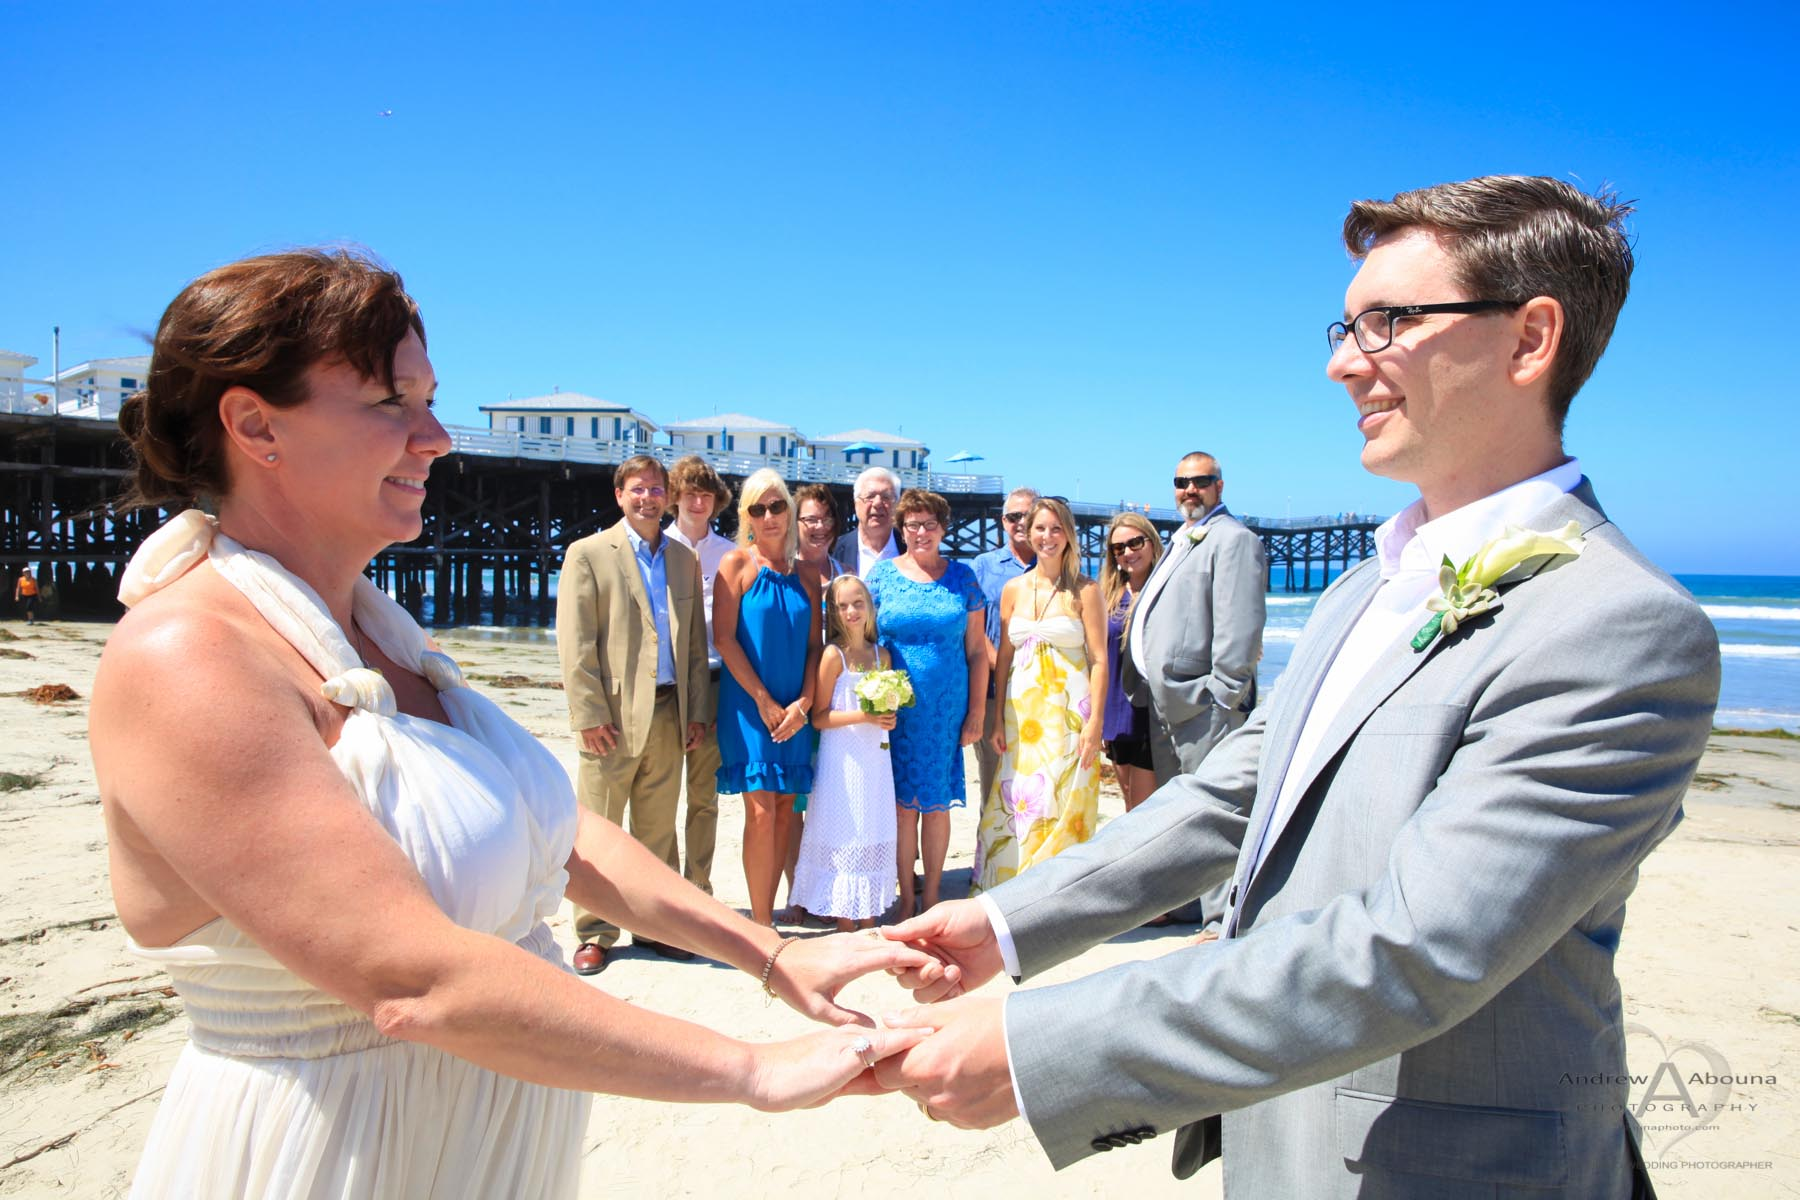 Melissa And Adam Pacific Beach Paradise Point Wedding Photos By Photographers In San Go Andrew Abouna